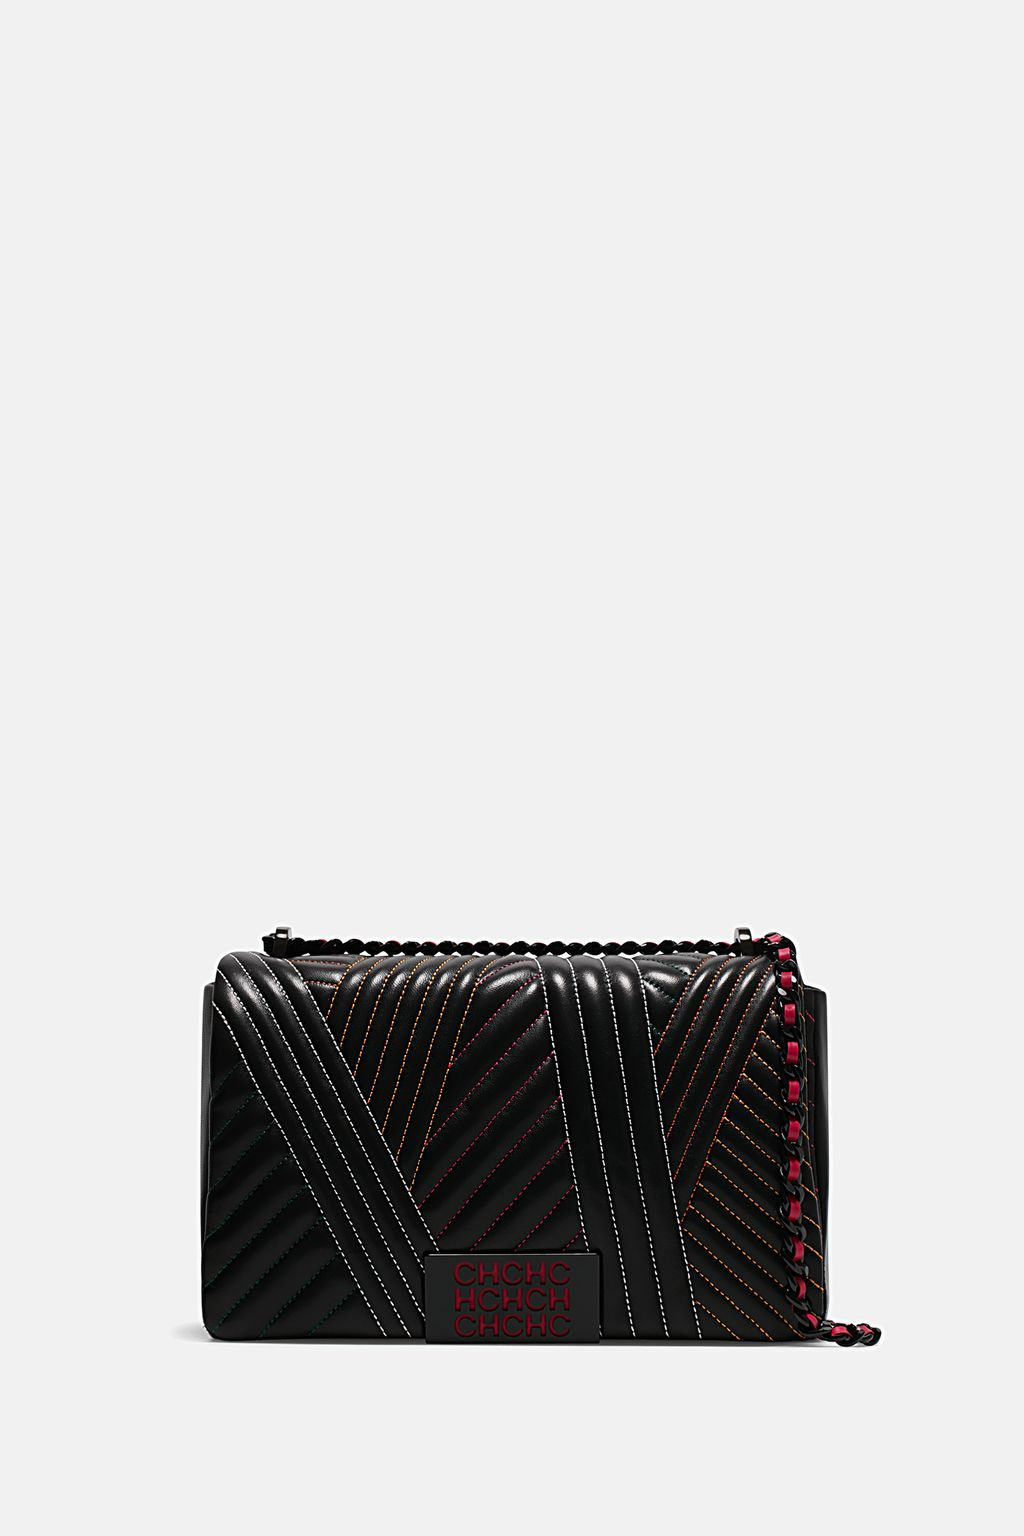 Bimba 10 | Medium cross body bag